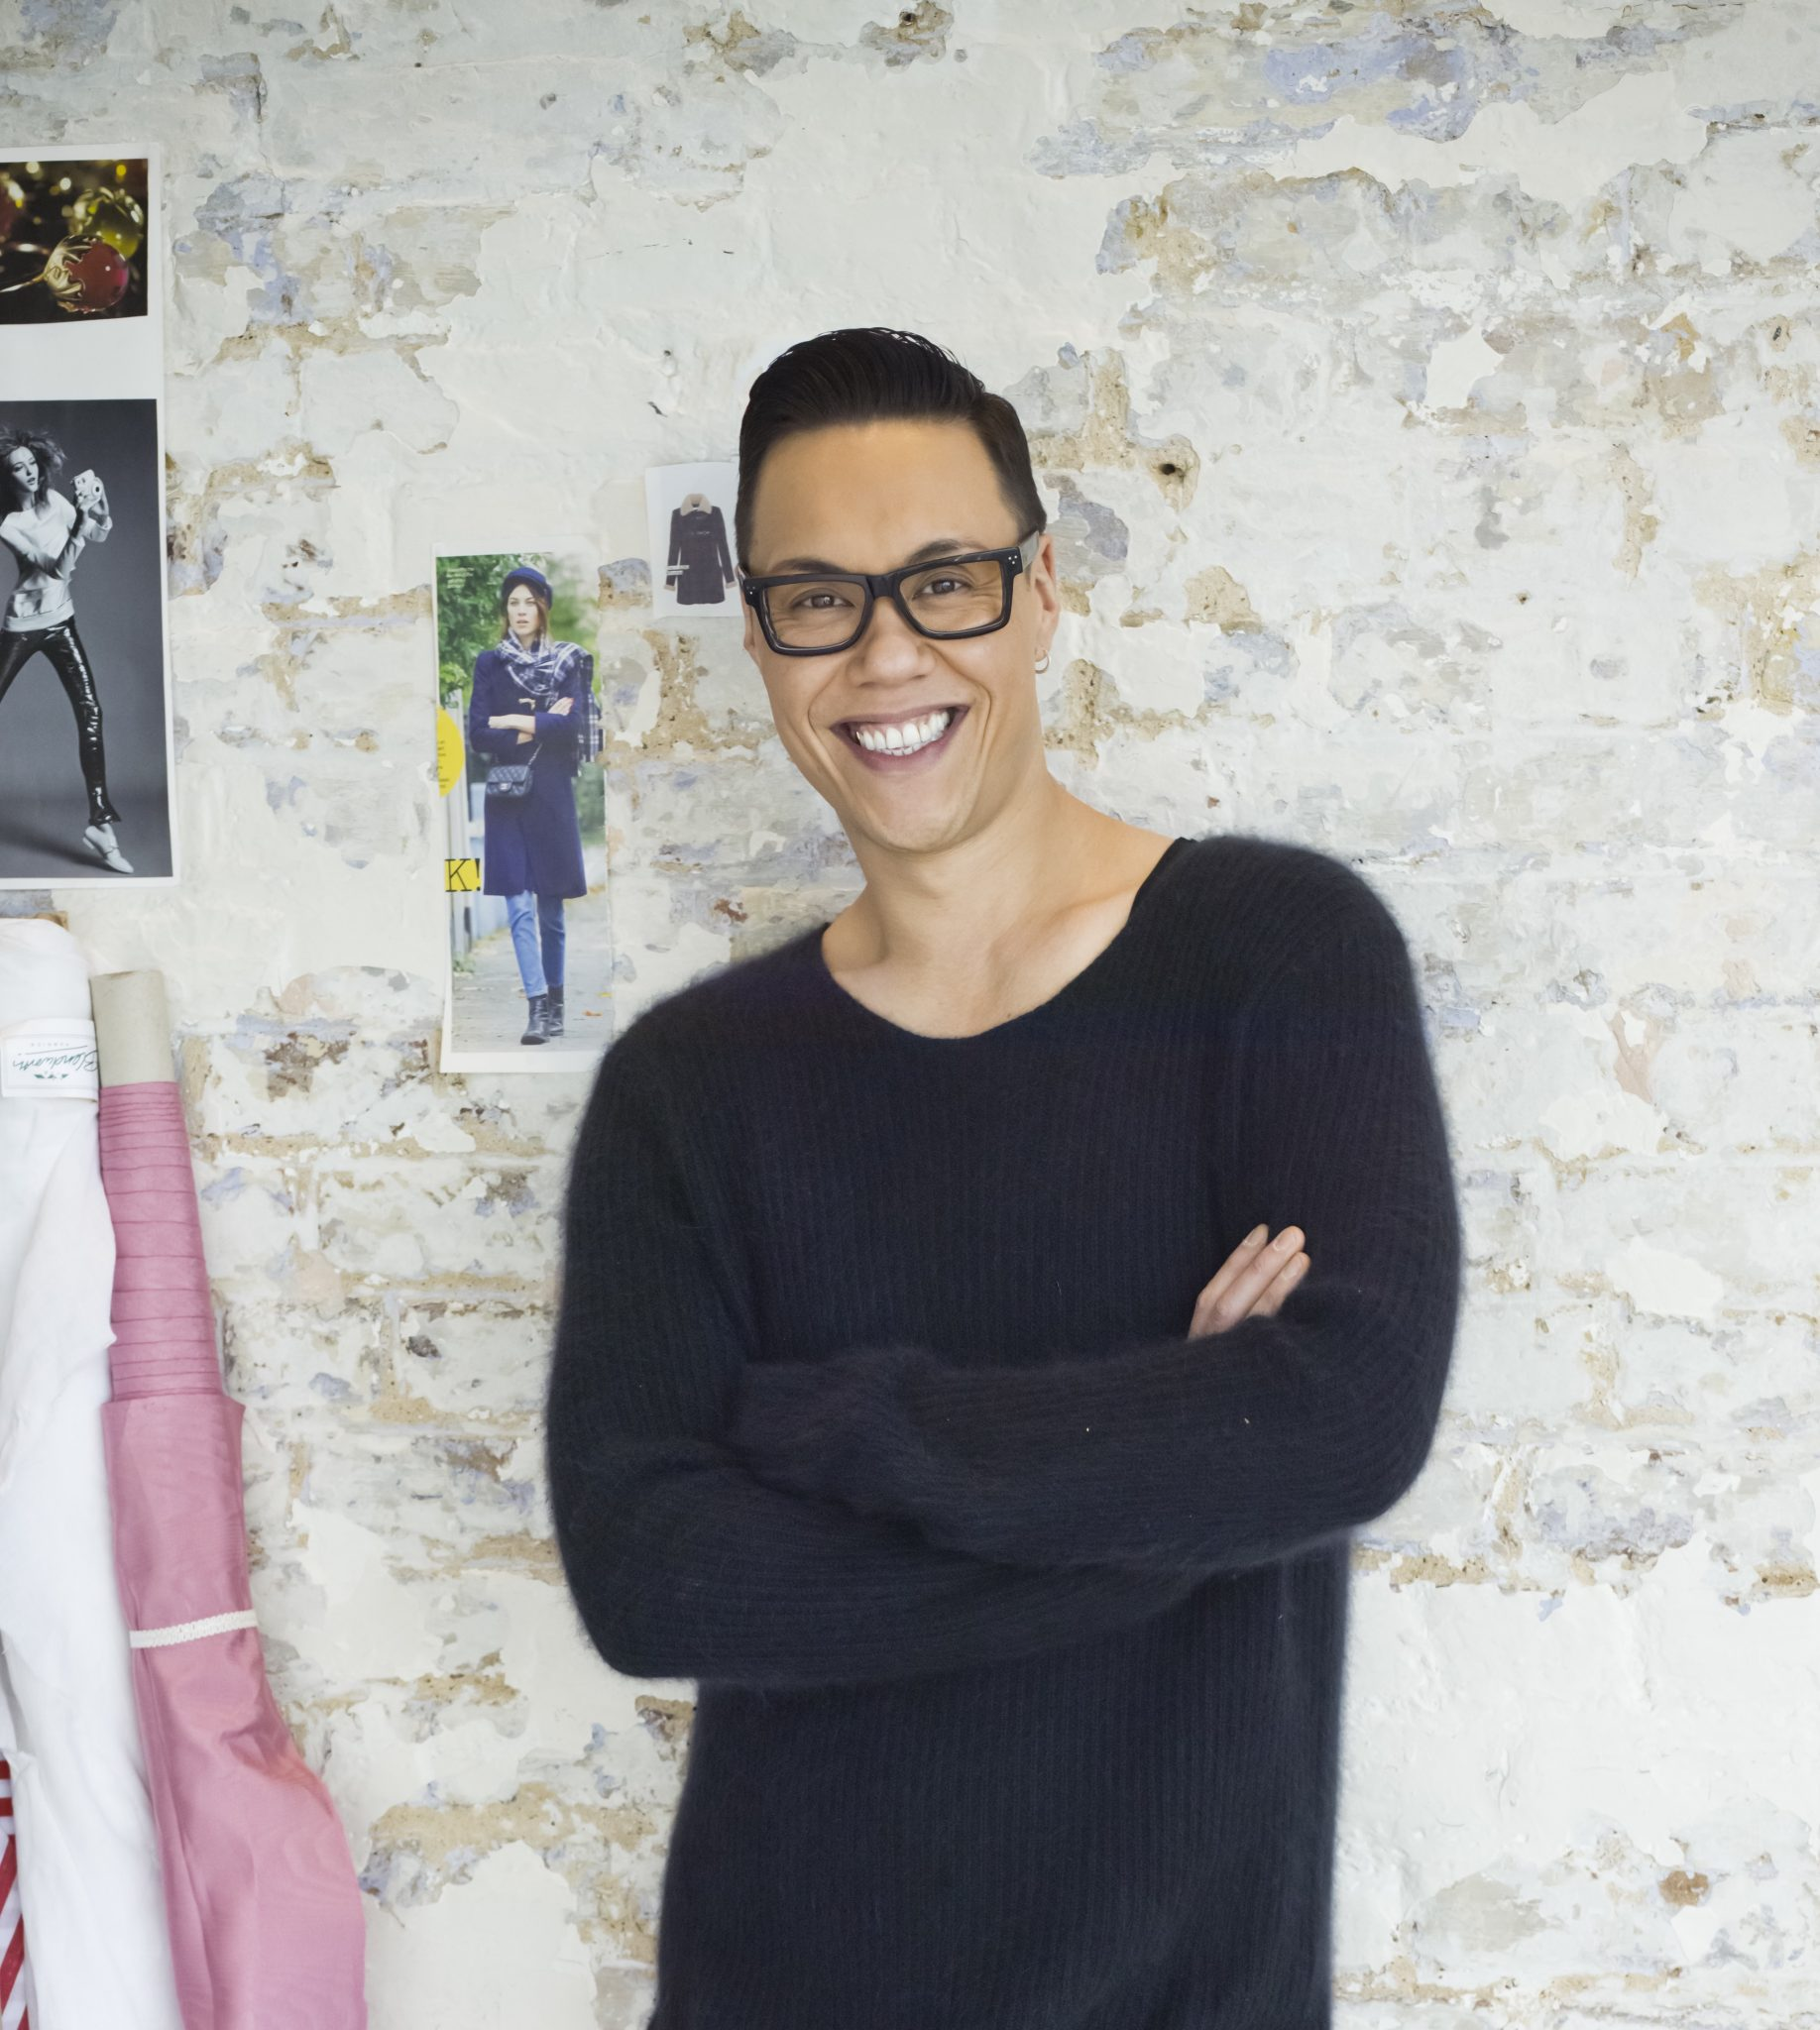 Gok Wan gives his top fashion tips ahead of most stylish night of the year